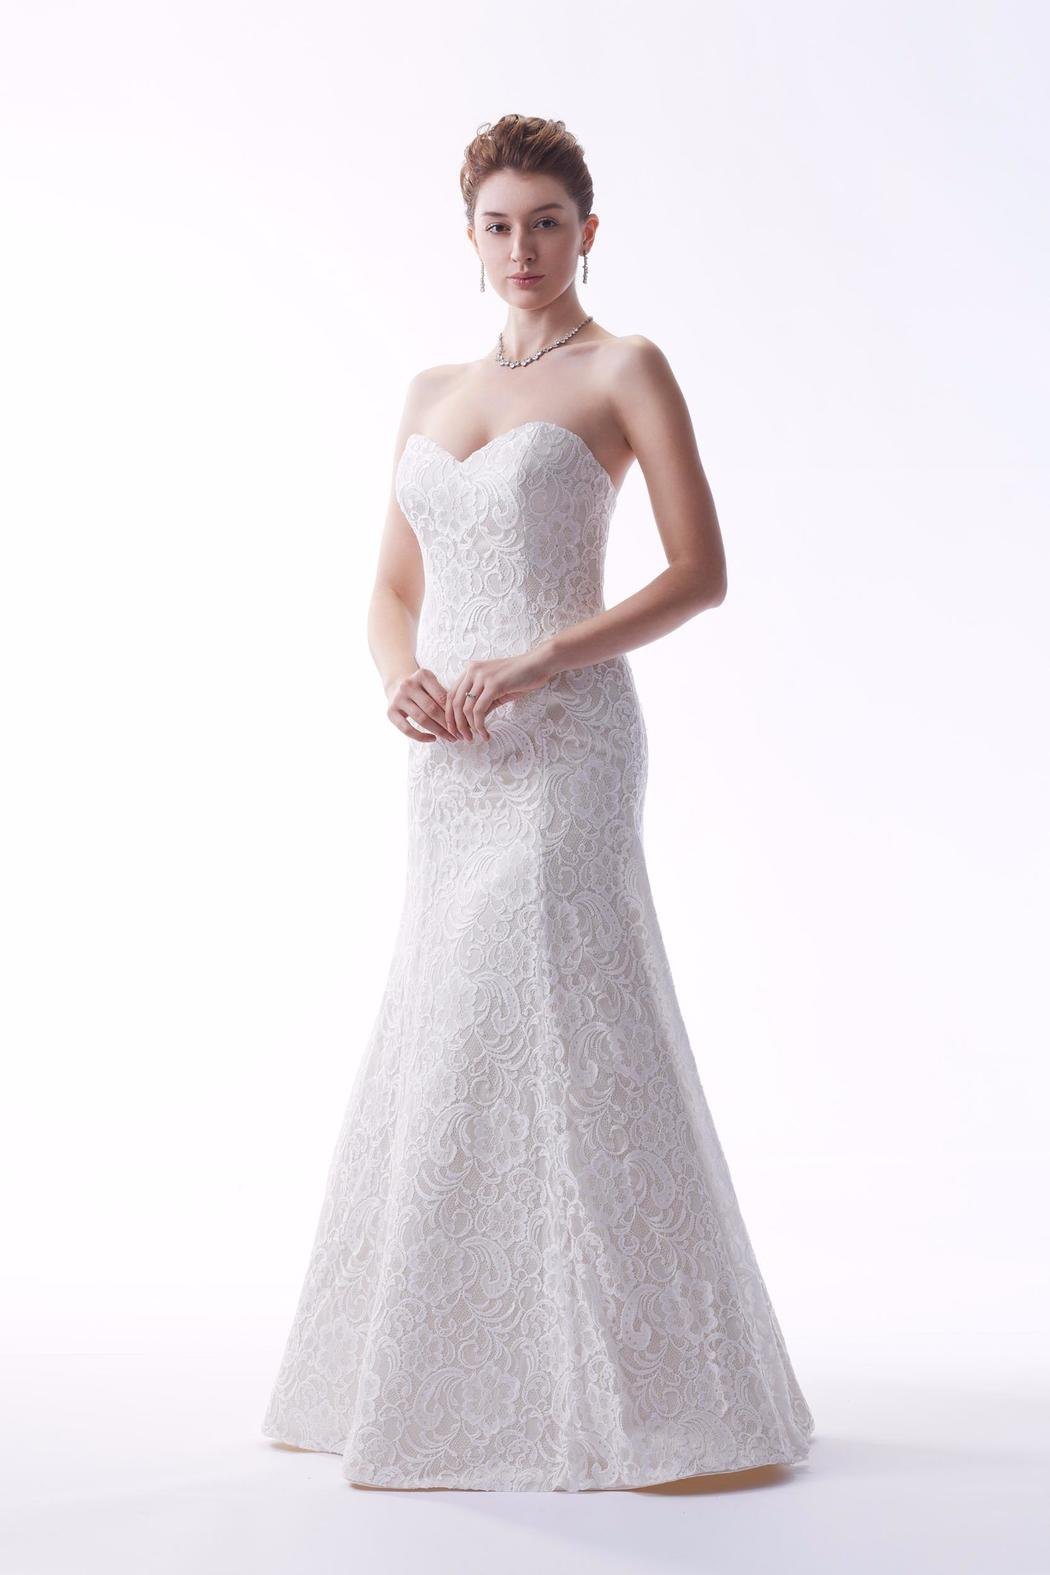 63f4e9c64764 Venus Bridal Strapless Lace Gown from North Dakota by White Lace ...